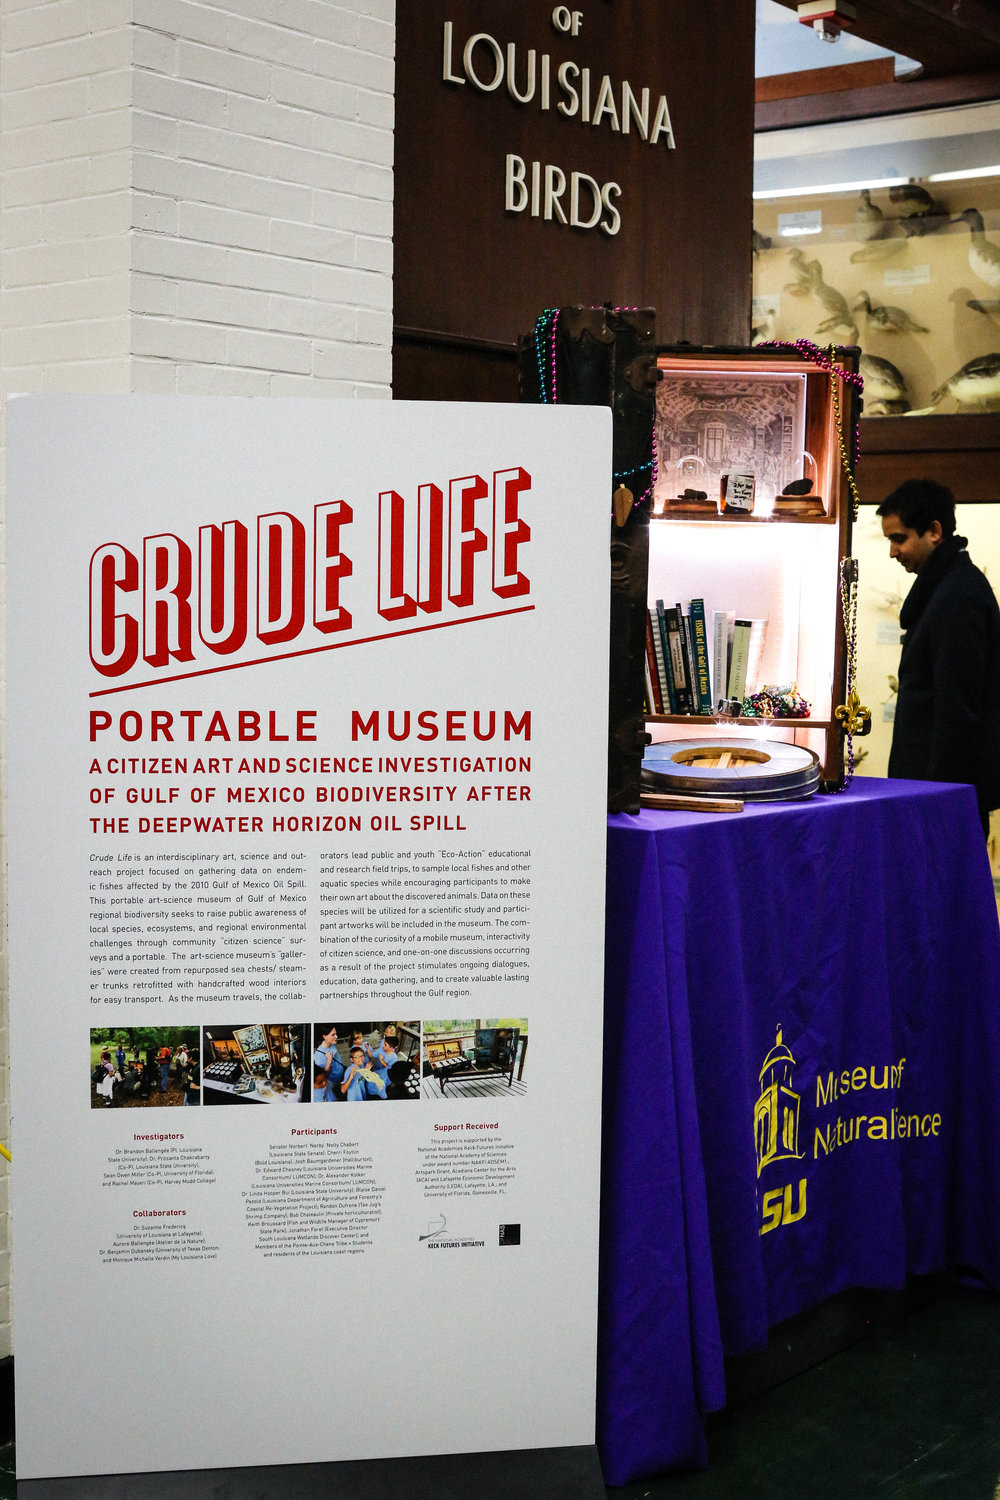 Crude Life set up at the LSU Museum of Natural Science. Photo by Paige Jarreau.